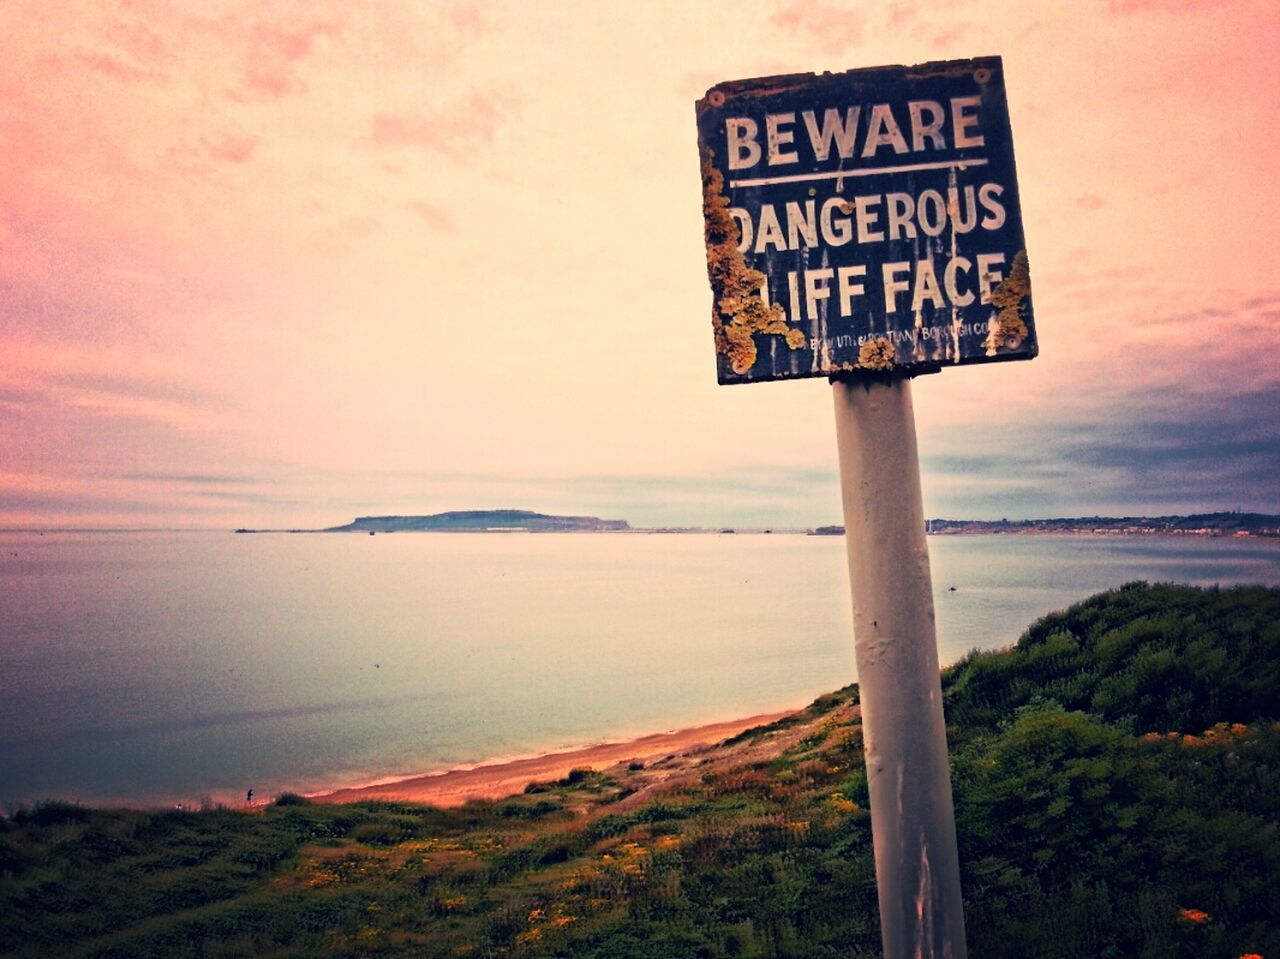 Weymouth Cliff Top Landscape_photography Landscape Seascape Seascape Photography Weymouth Dorset Signs Artistic Warning Sign Viewpoint Sea View Coastline Coast Uk Coastal Photography Uk Coastline No People Taking Photos Eye Em Photo